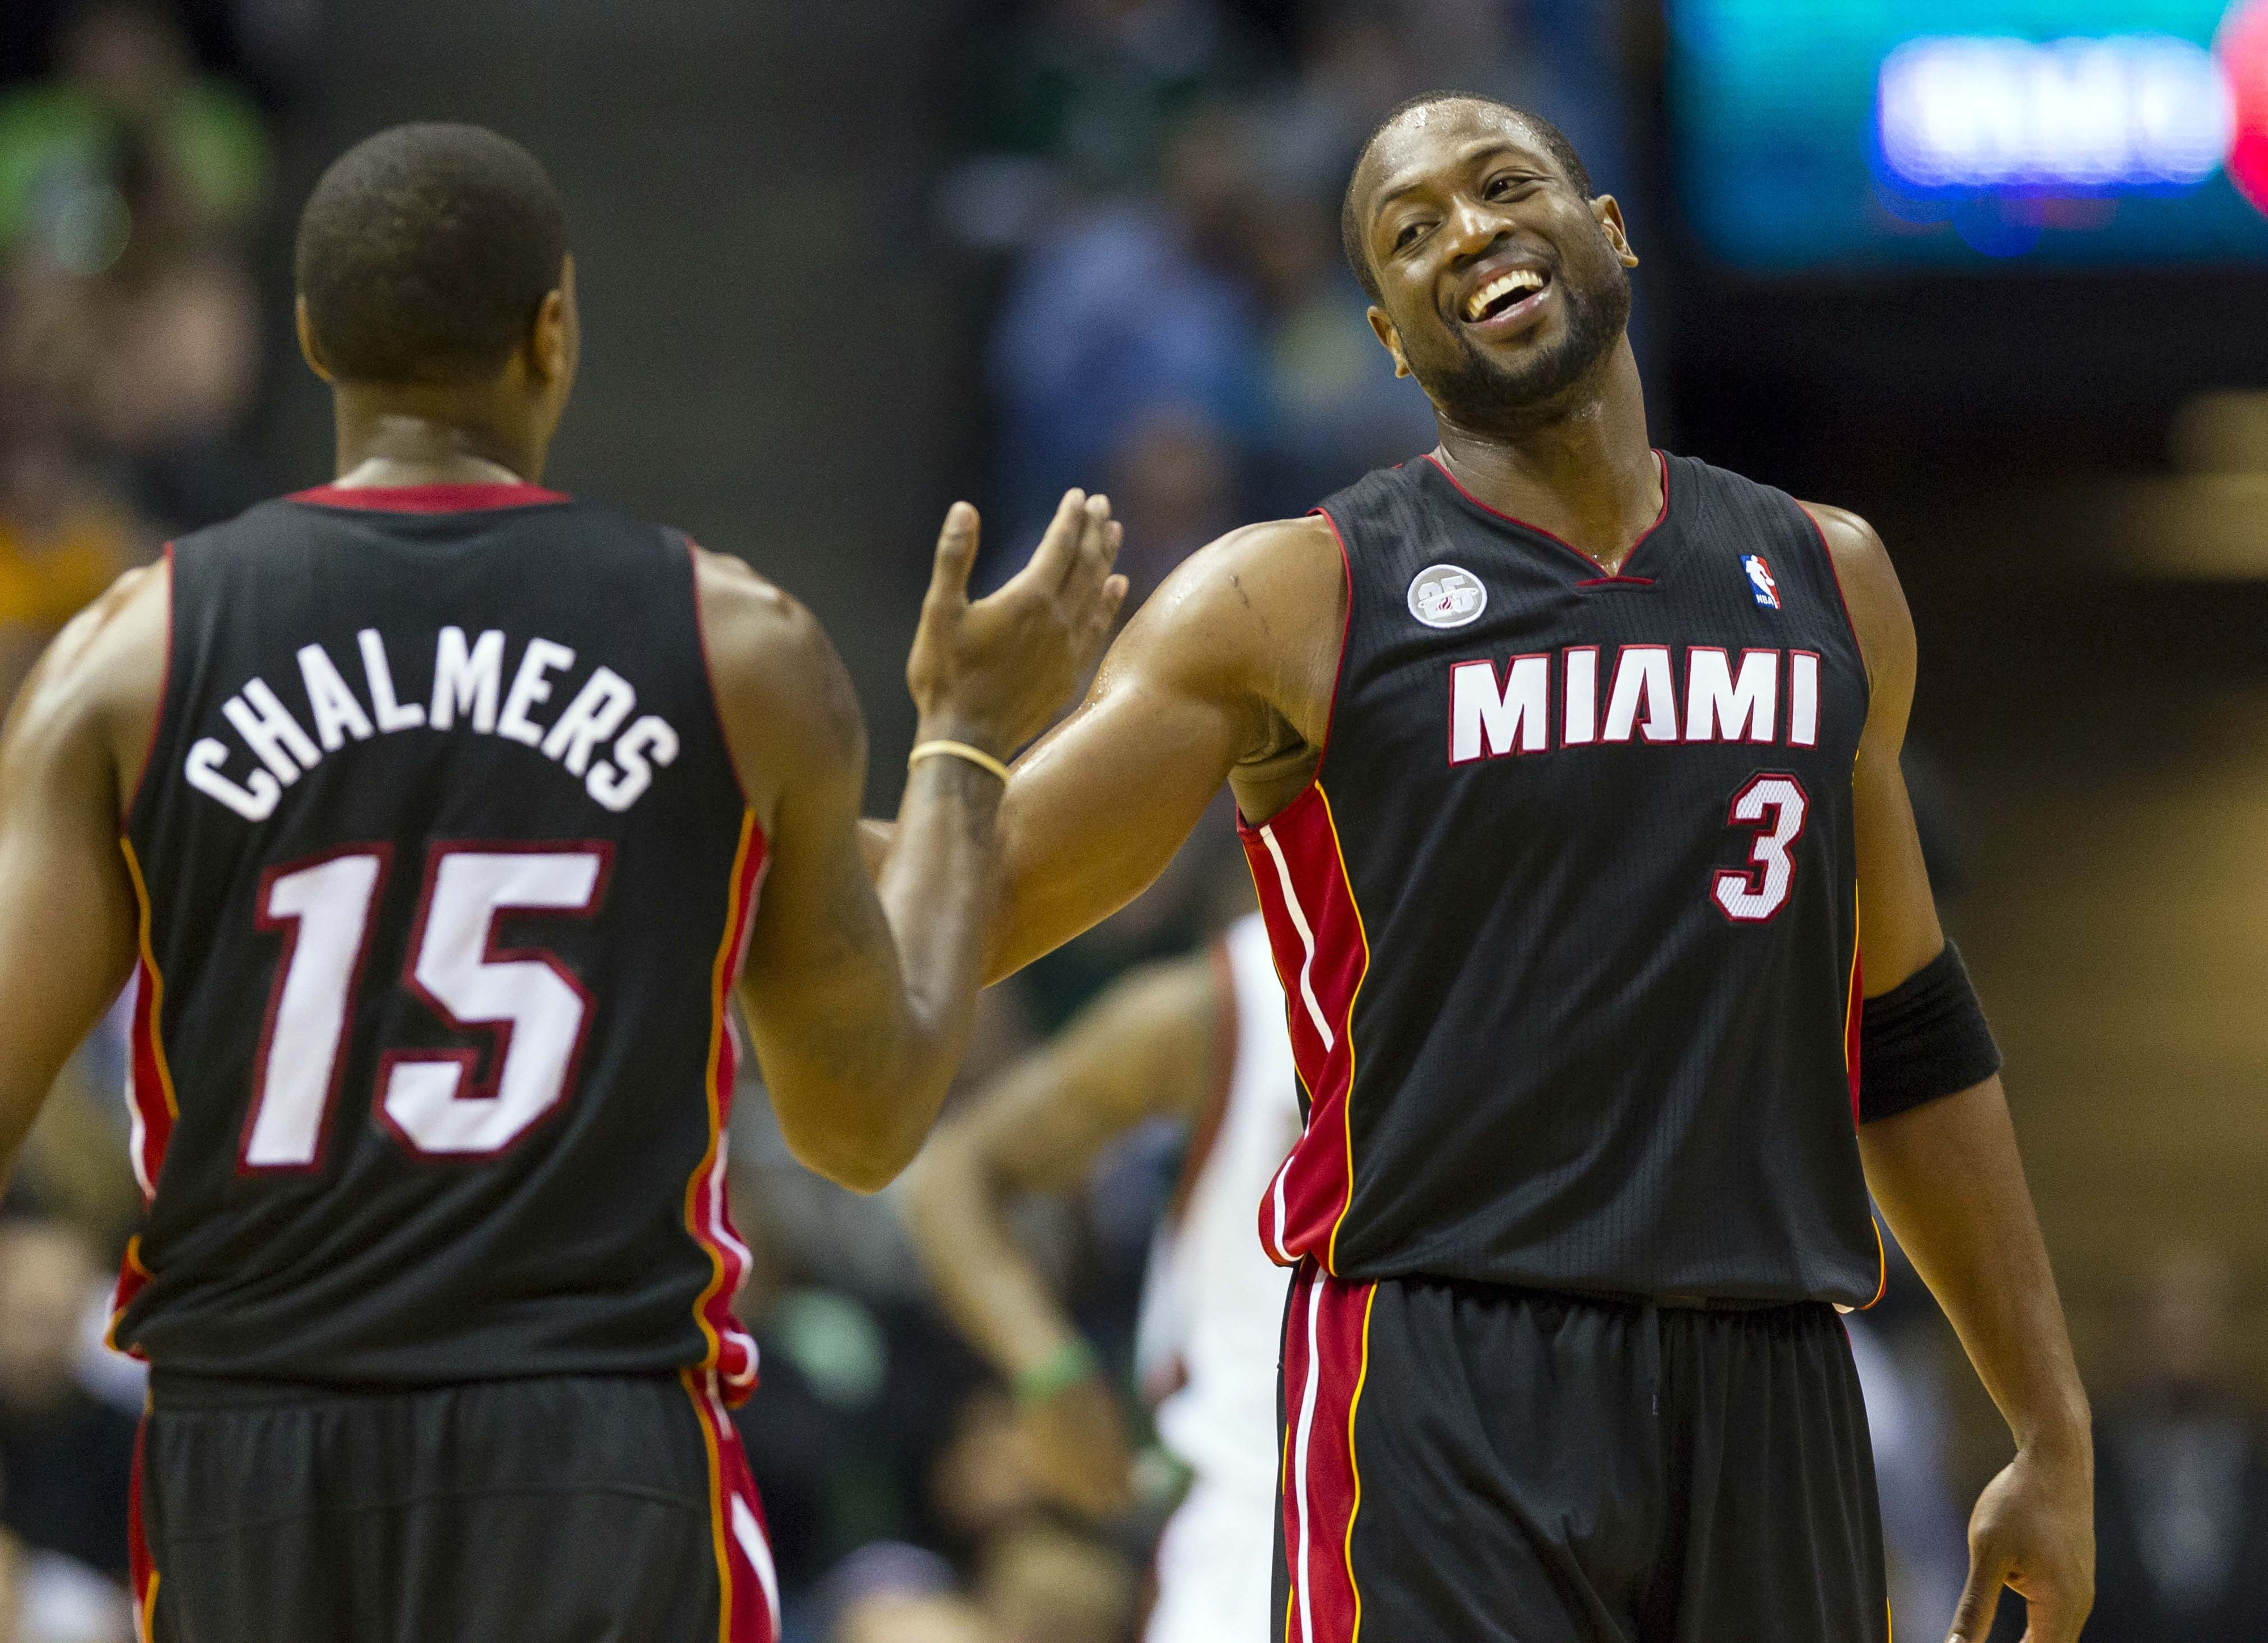 Mario Chalmers and Dwyane Wade